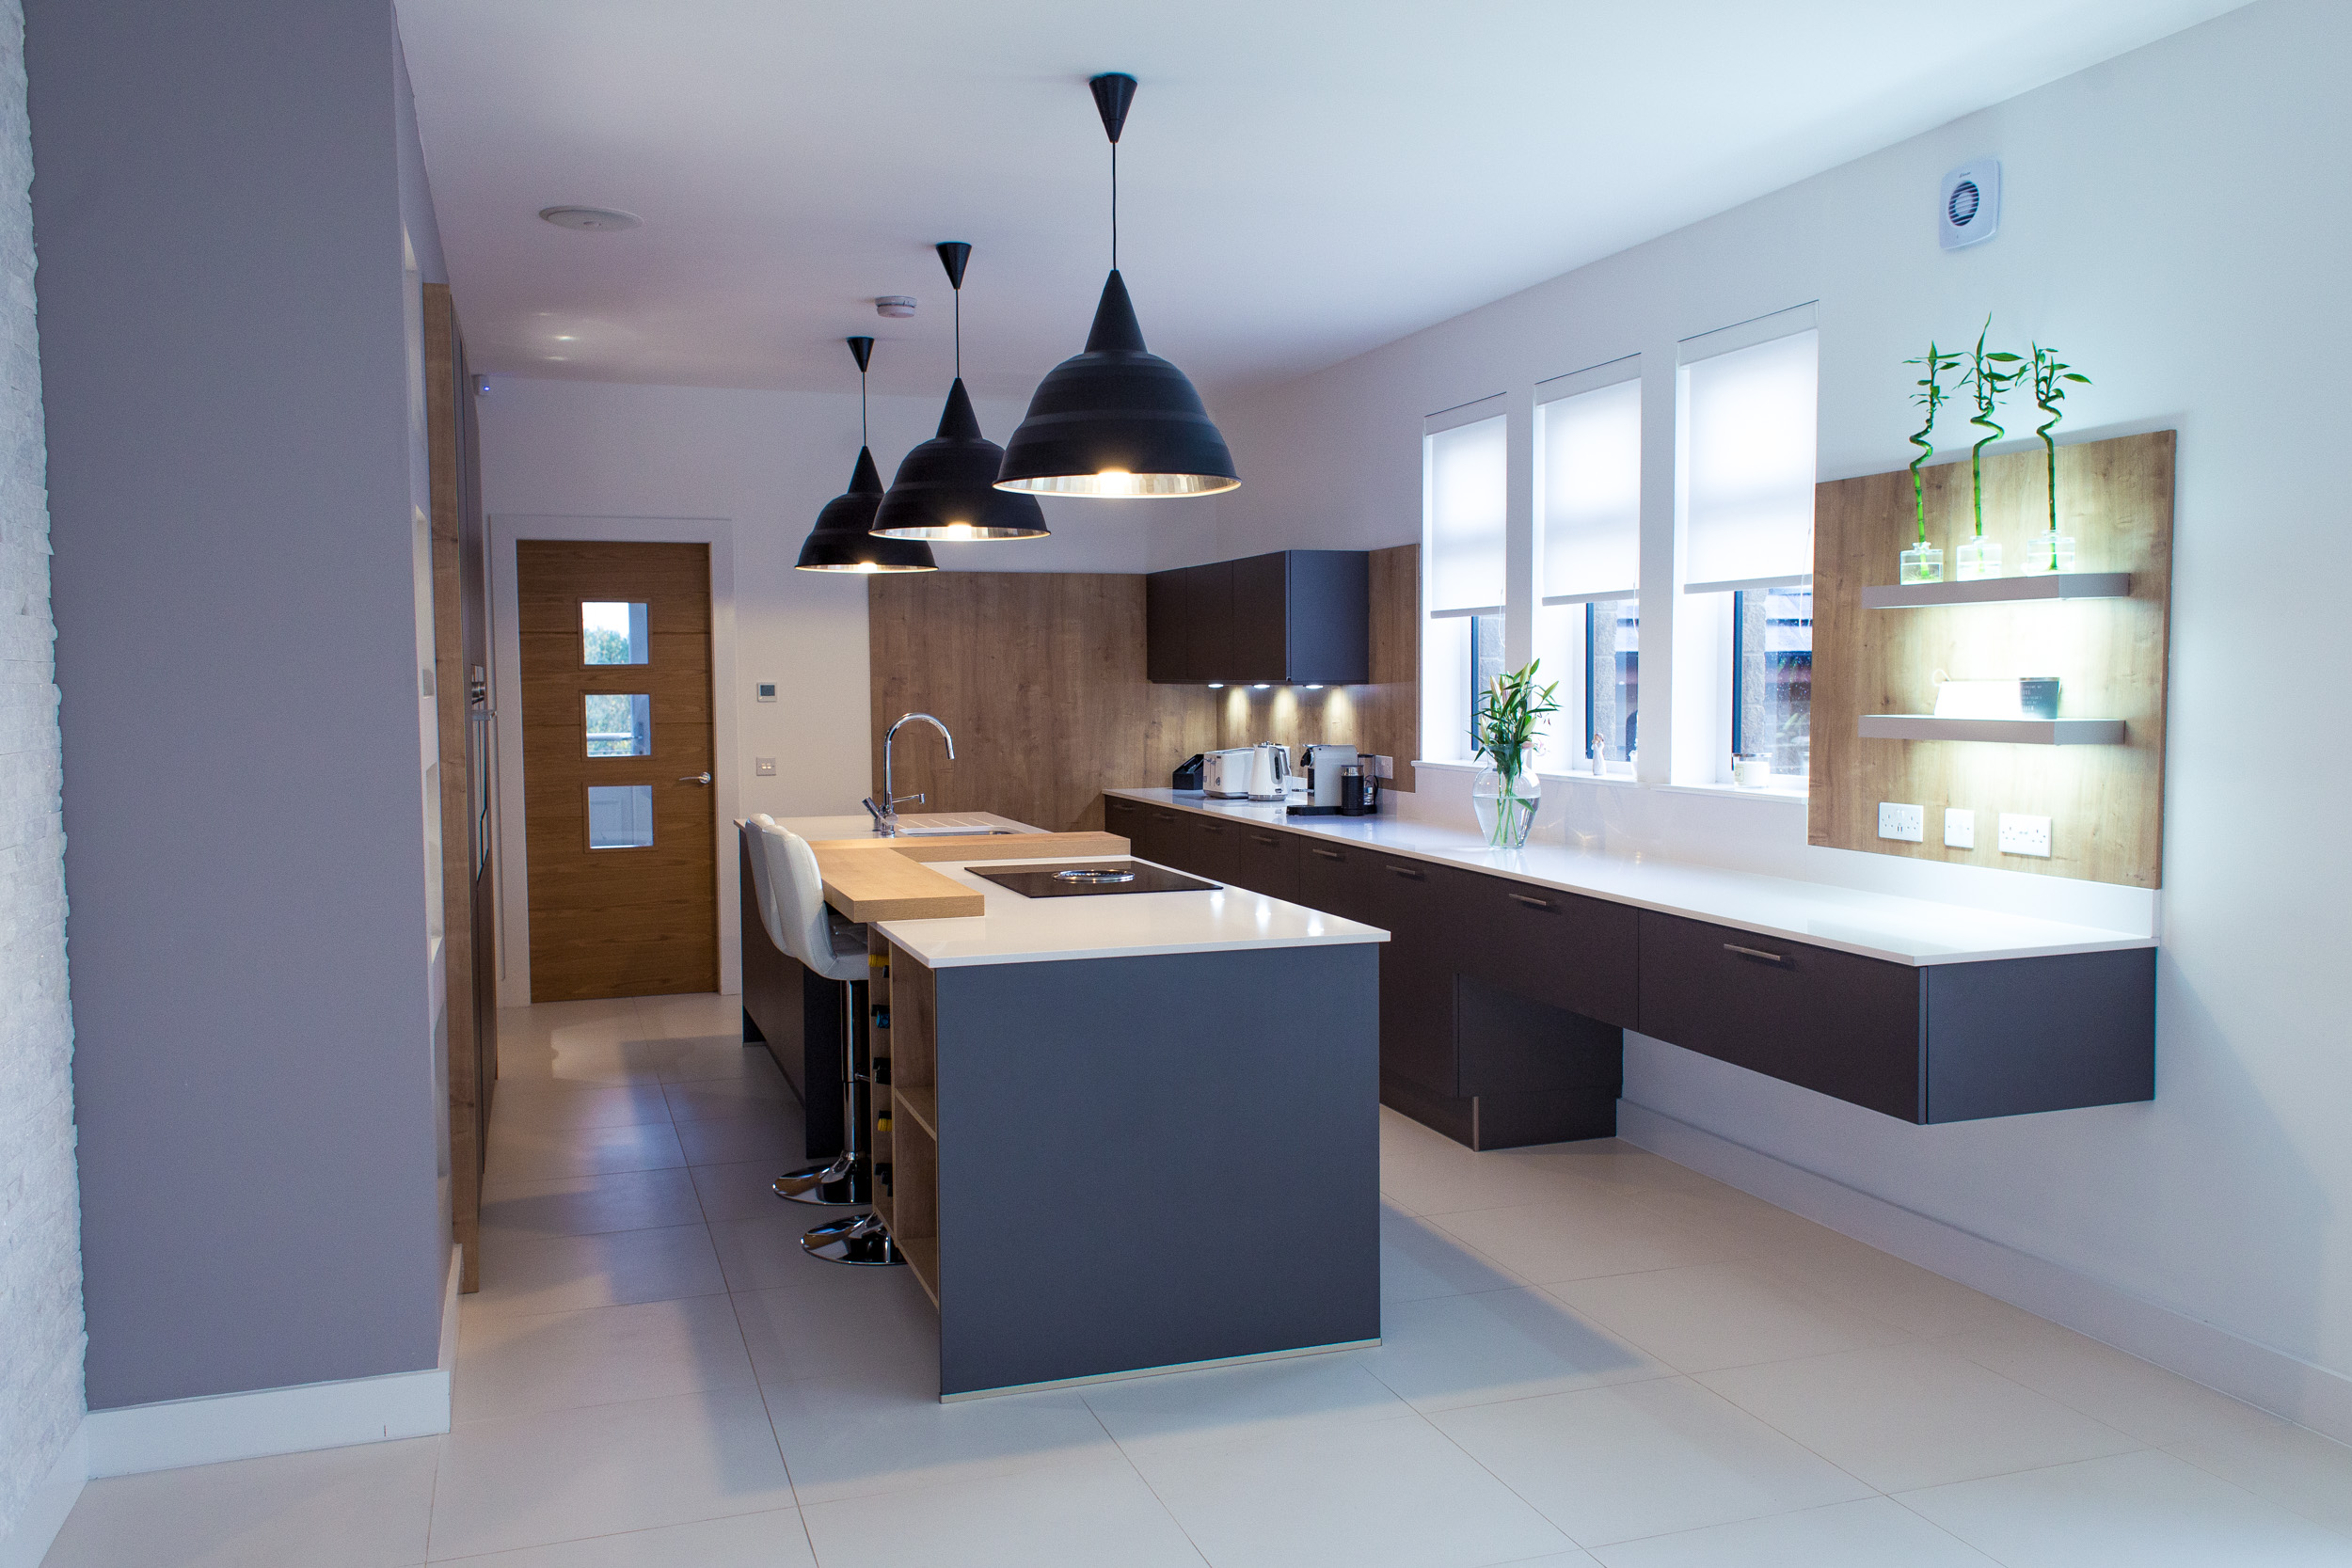 Image 5: In conjunction with Realm Homes Scotland